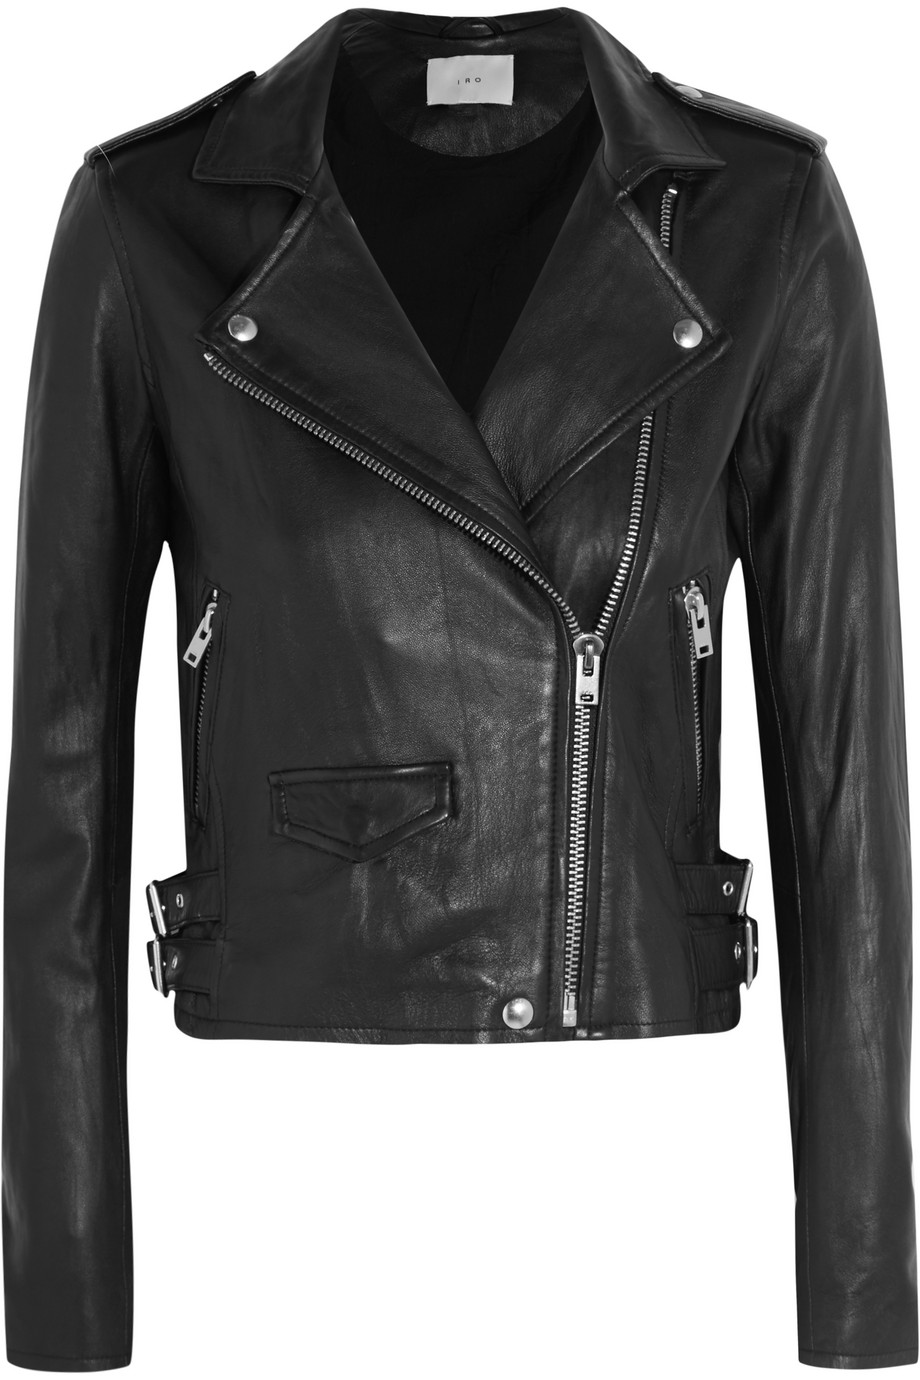 IRO Ashville Cropped Leather Biker Jacket, Black, Women's, Size: 40